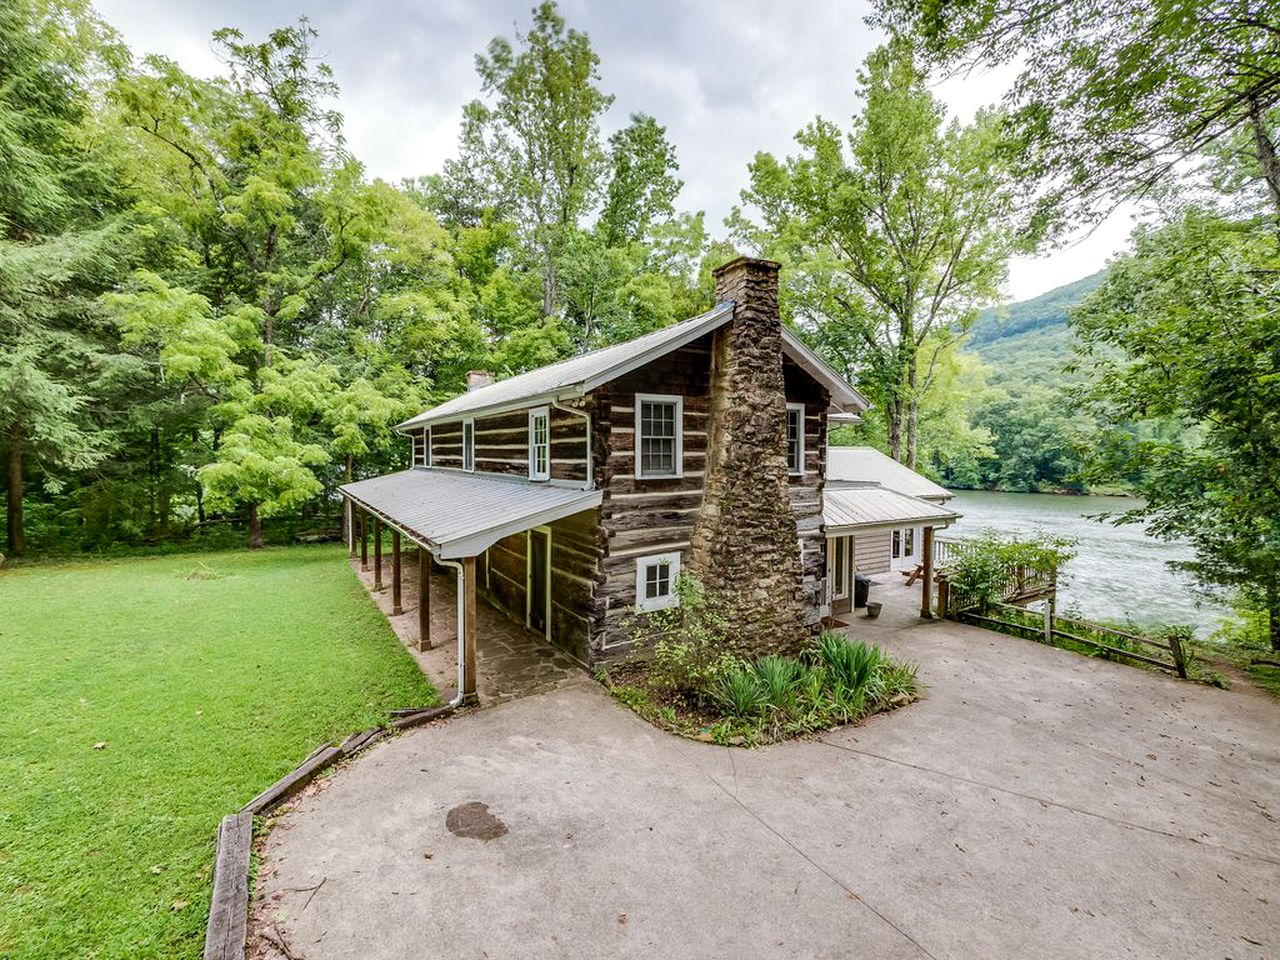 Cabins (Chattanooga, Tennessee, United States)